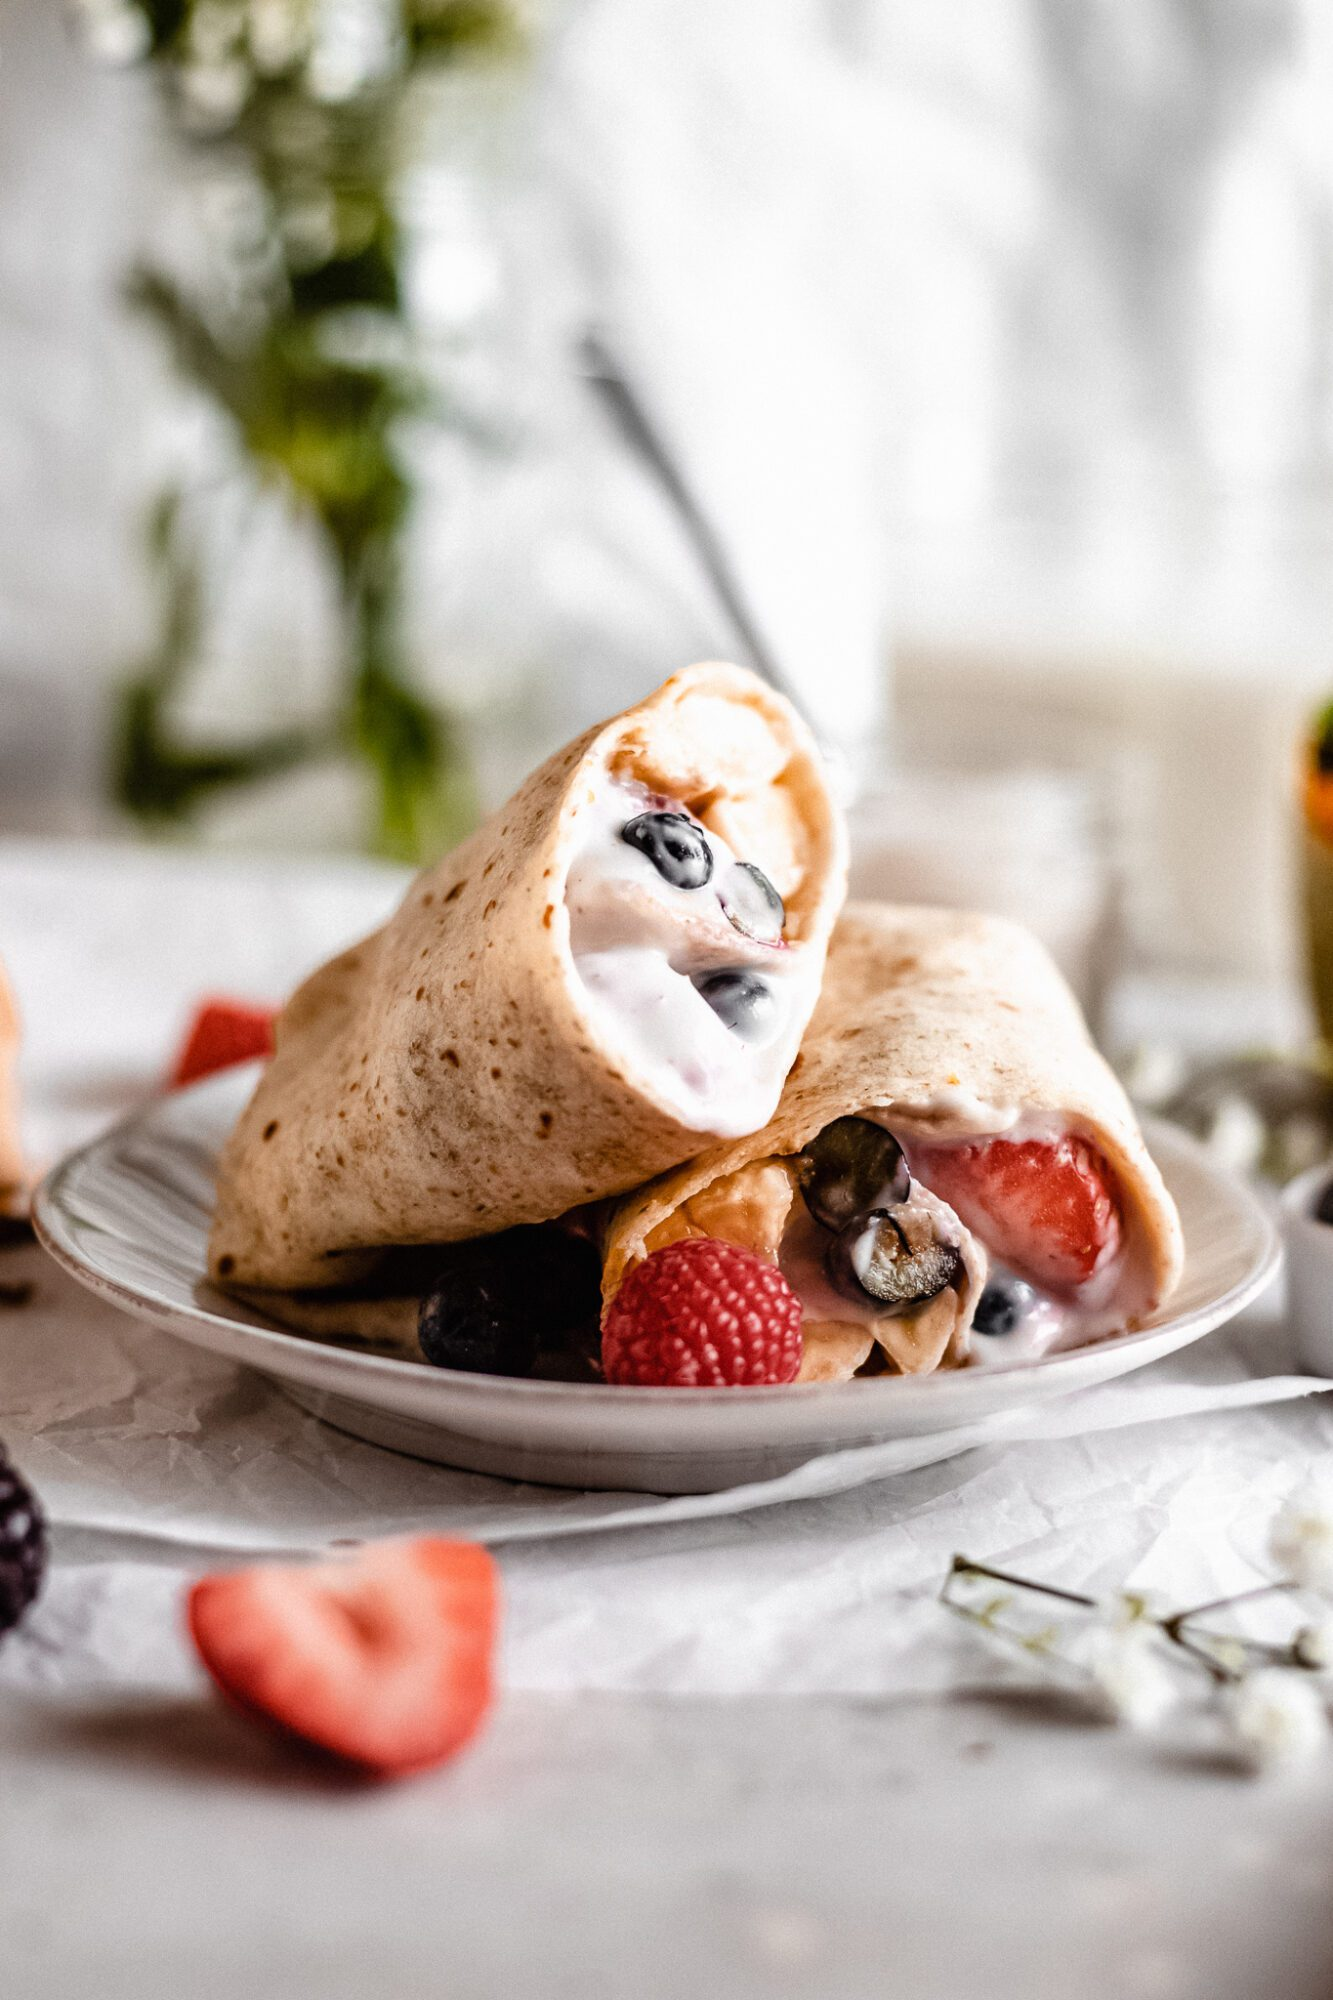 berry and yogurt breakfast burrito